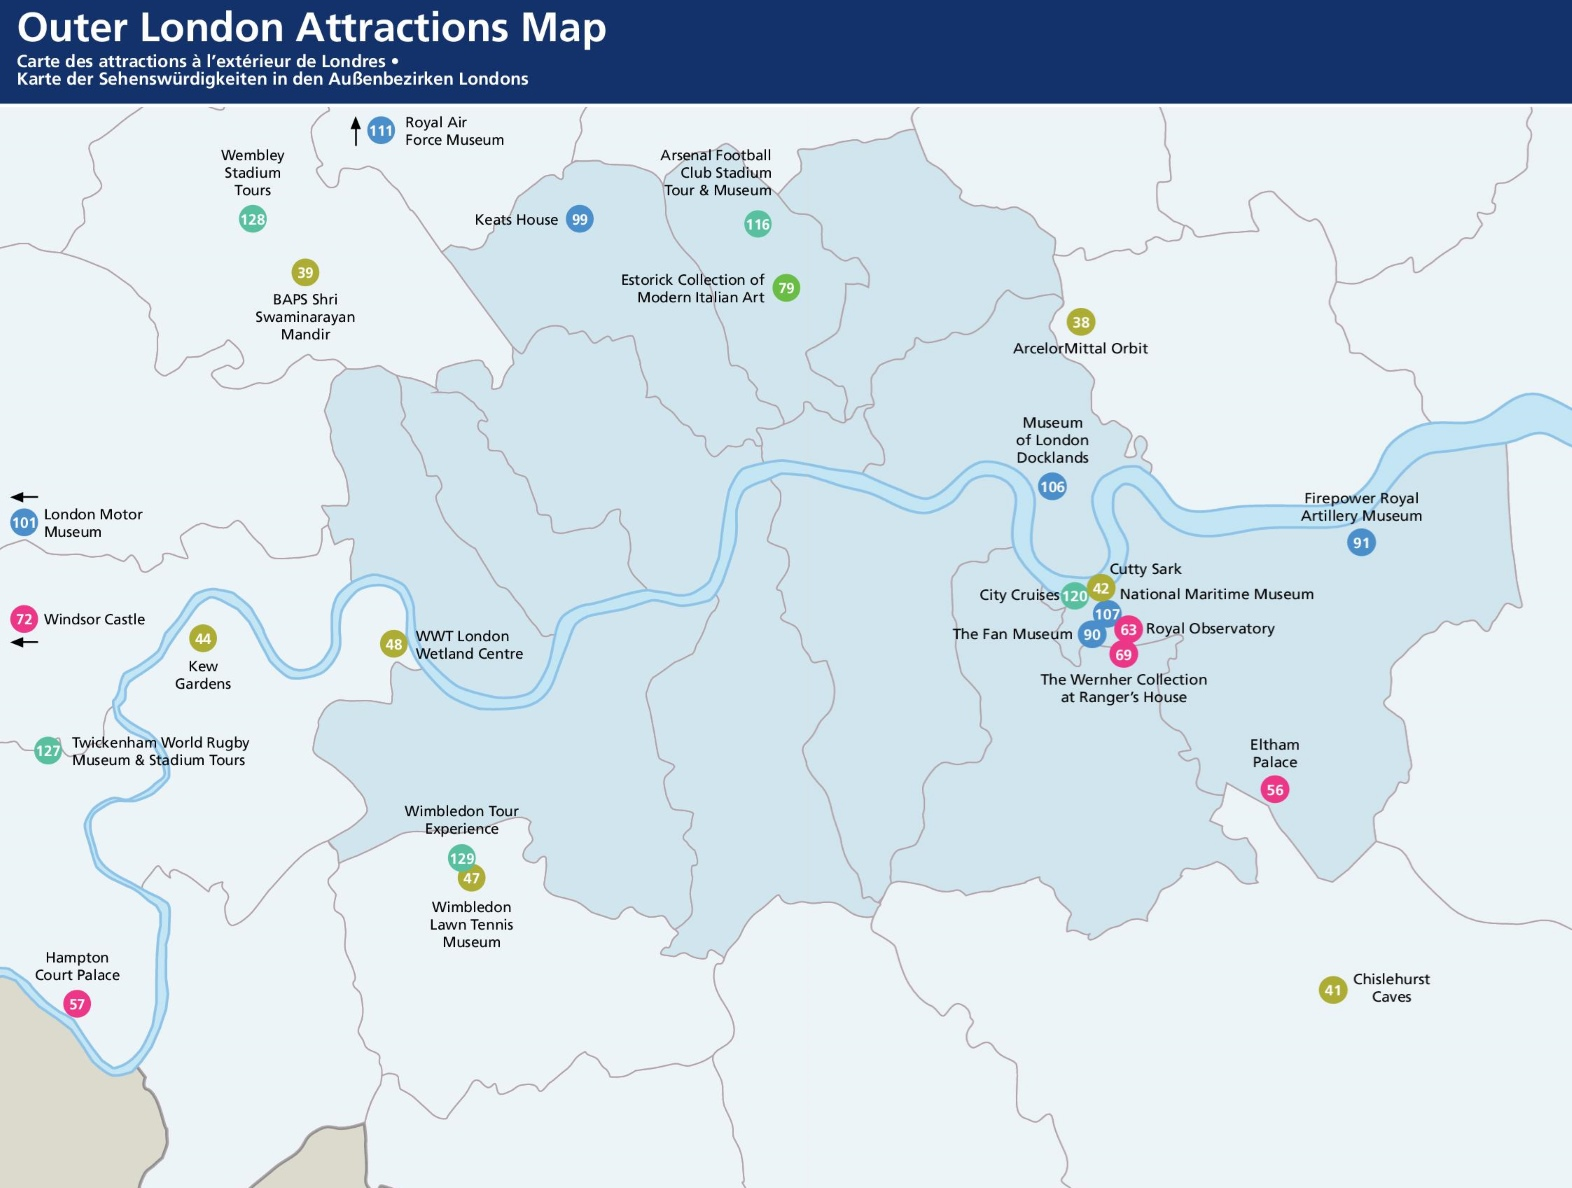 Map Outer London.Outer London Tourist Attractions Map